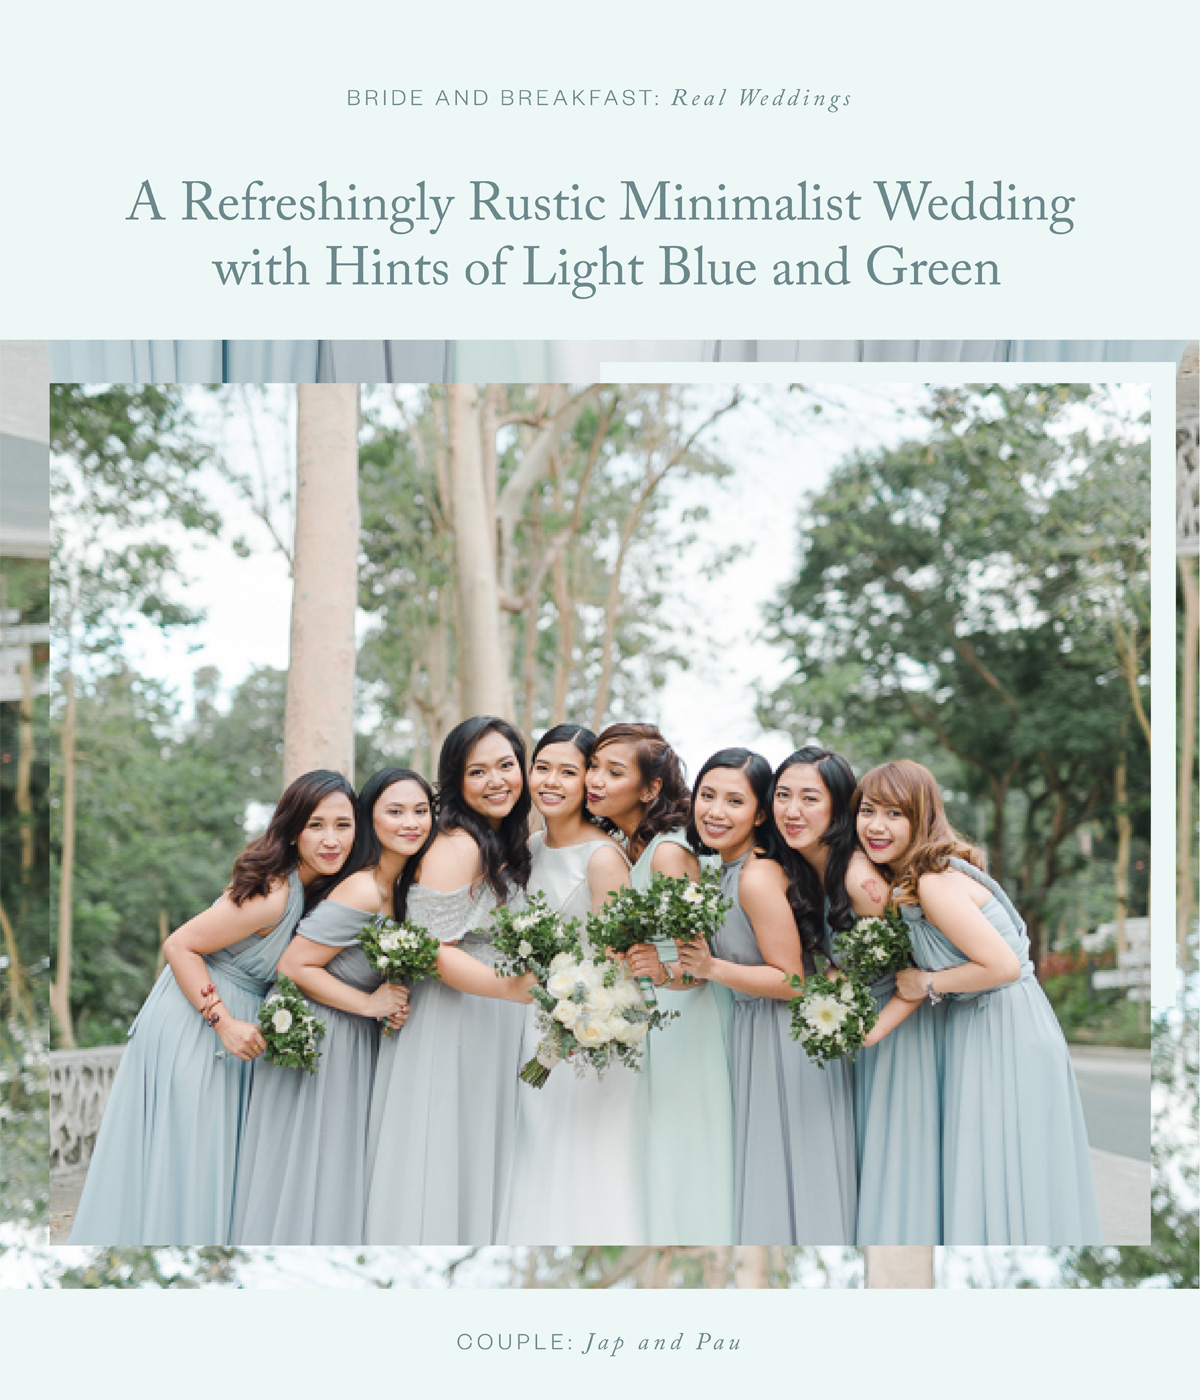 A Refreshingly Rustic Minimalist Wedding with Hints of Light Blue and Green